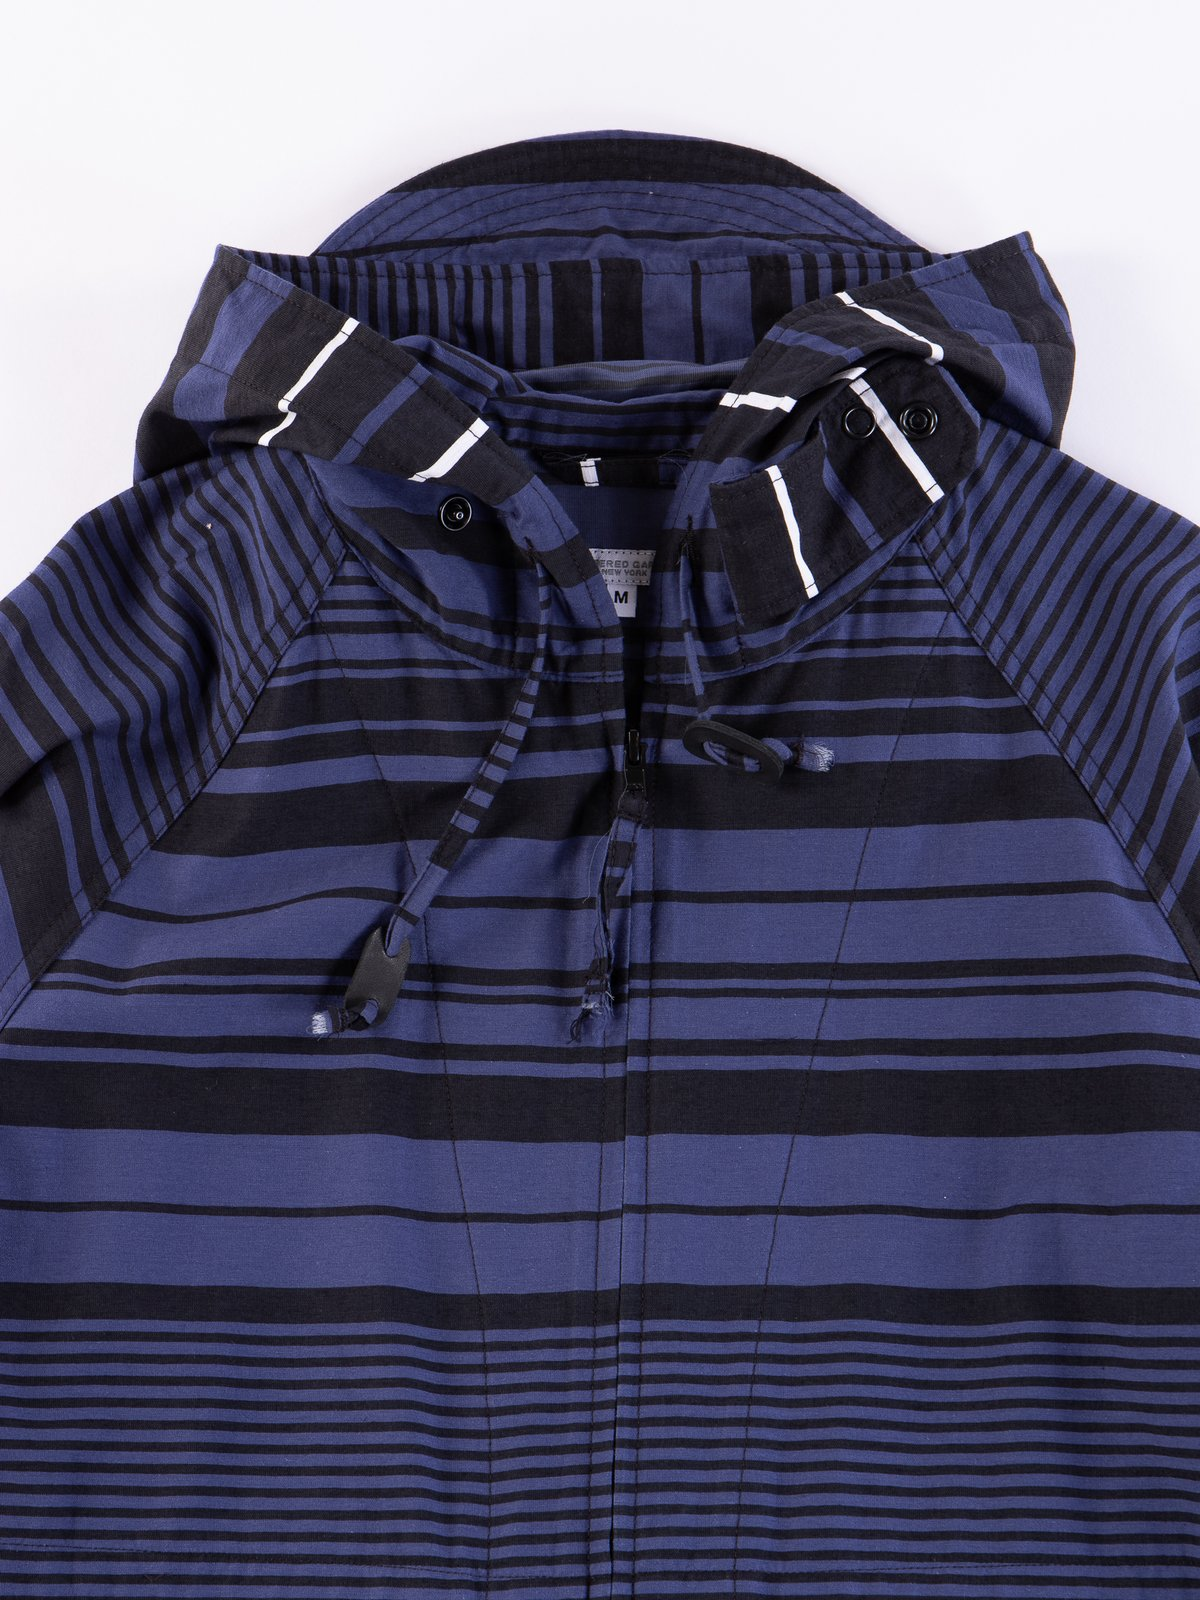 Navy Horizontal Stripe Activecloth Atlantic Parka - Image 4